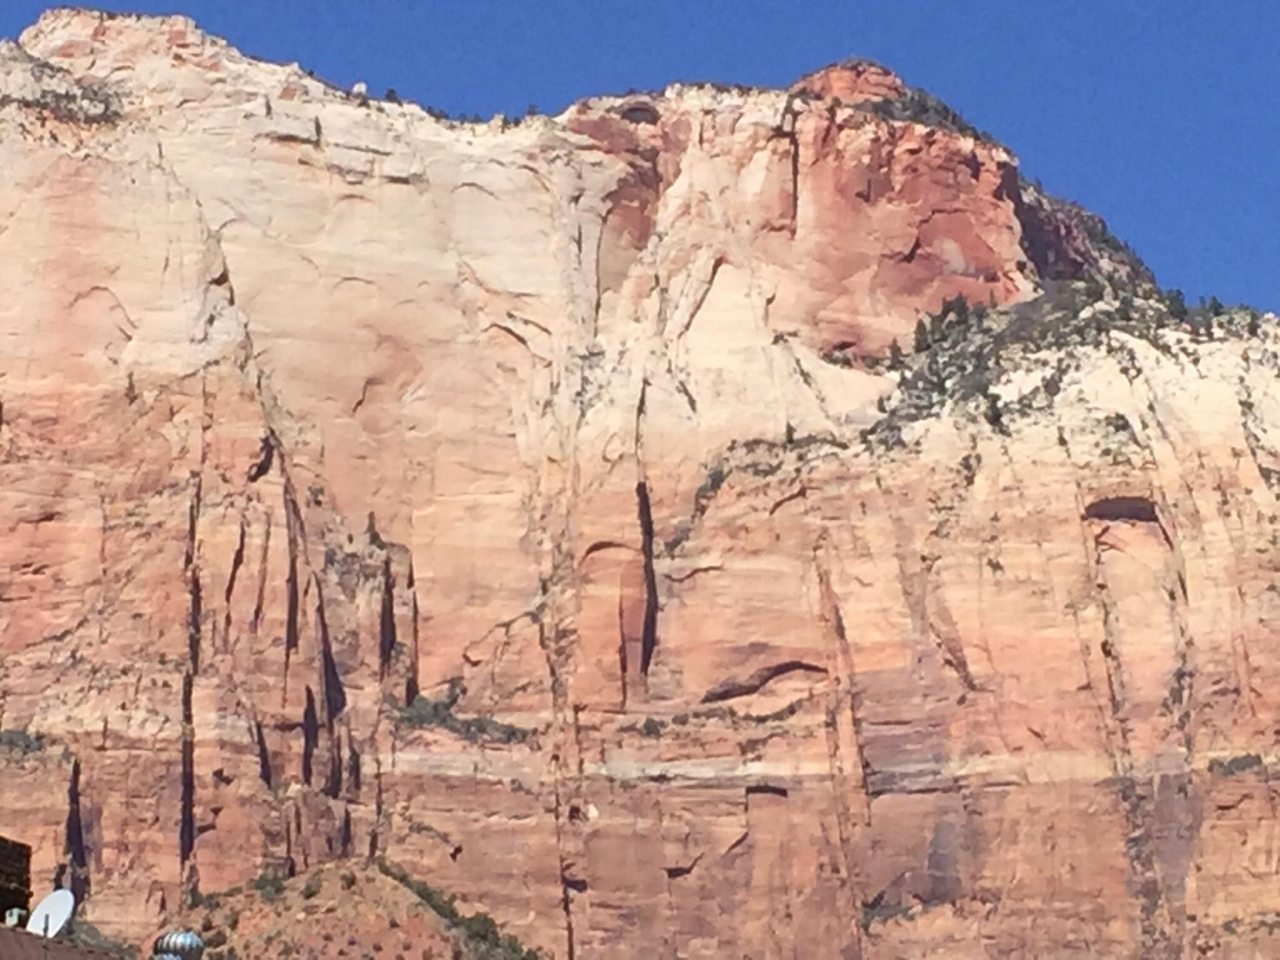 A picture from Zion National Park by Craig Meredith